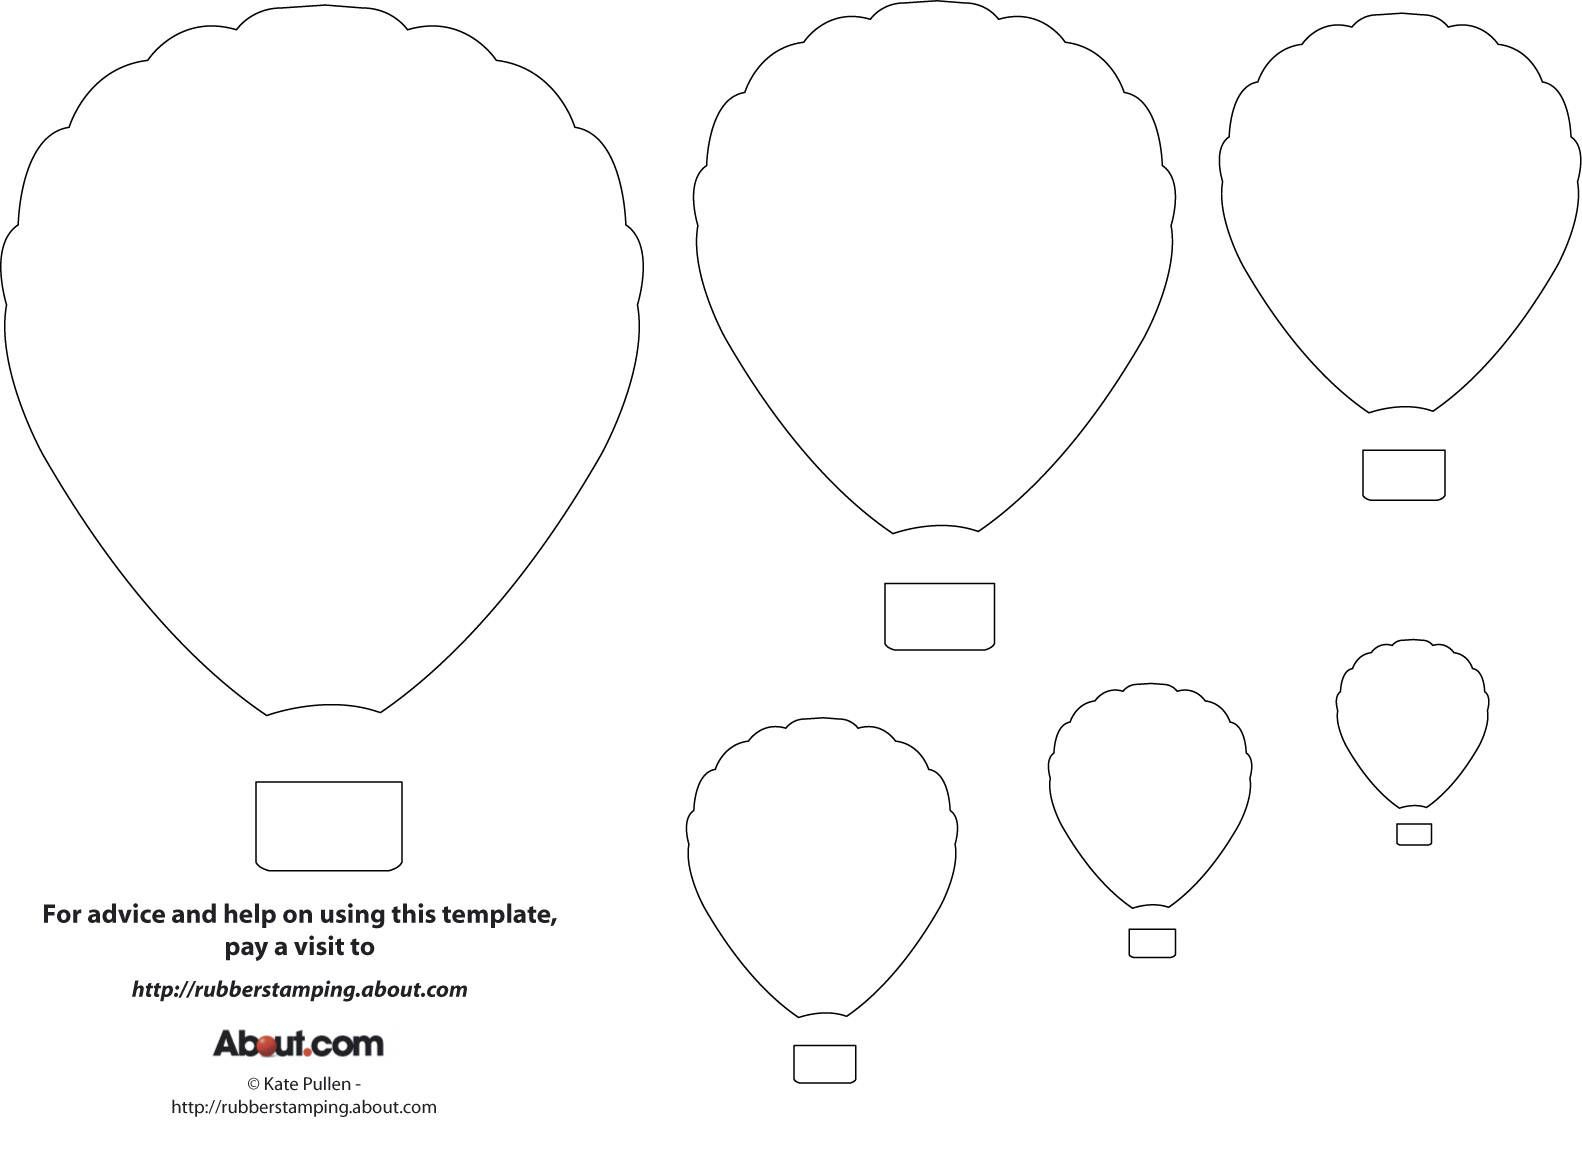 12 Free Printable Templates | Printables | Pinterest | Balloon - Free Printable Pictures Of Balloons